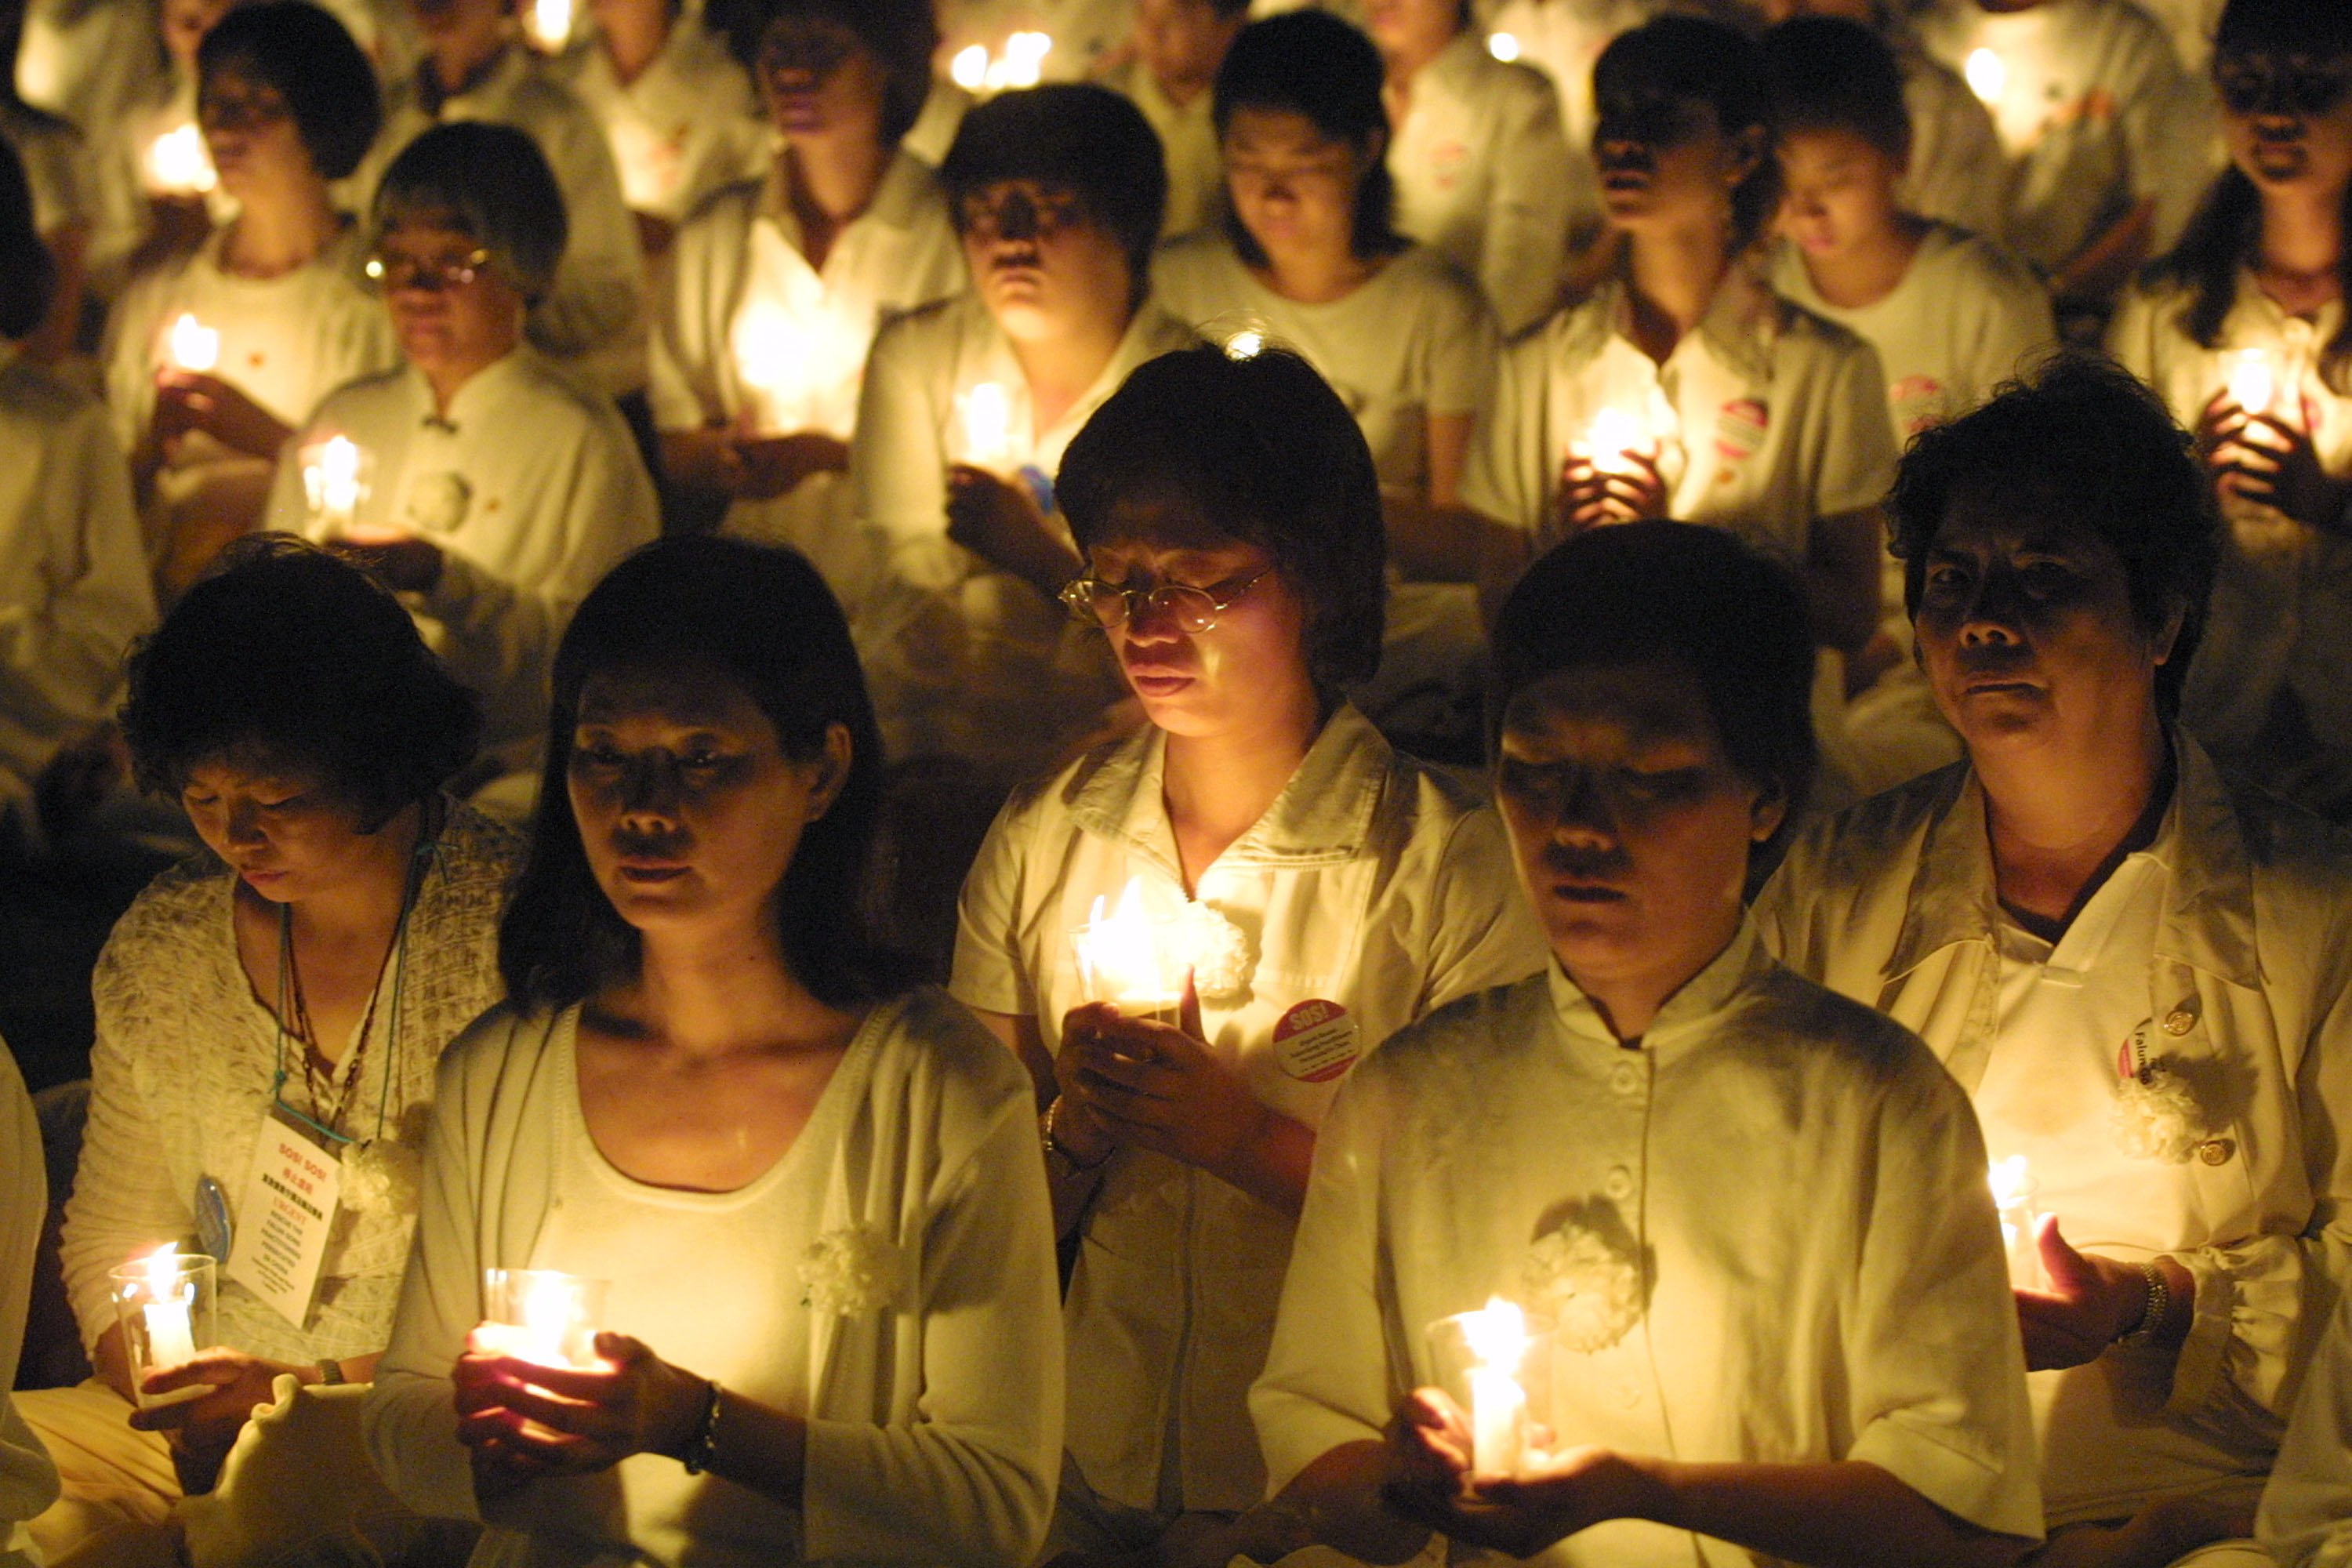 Members of the Falun Gong spiritual movement hold candles during a candlelight vigil July 19, 2001 in Washington, DC to mark the second anniversary of a Chinese government crackdown on the outlawed religious sect. (Photo by Alex Wong/Getty Images)